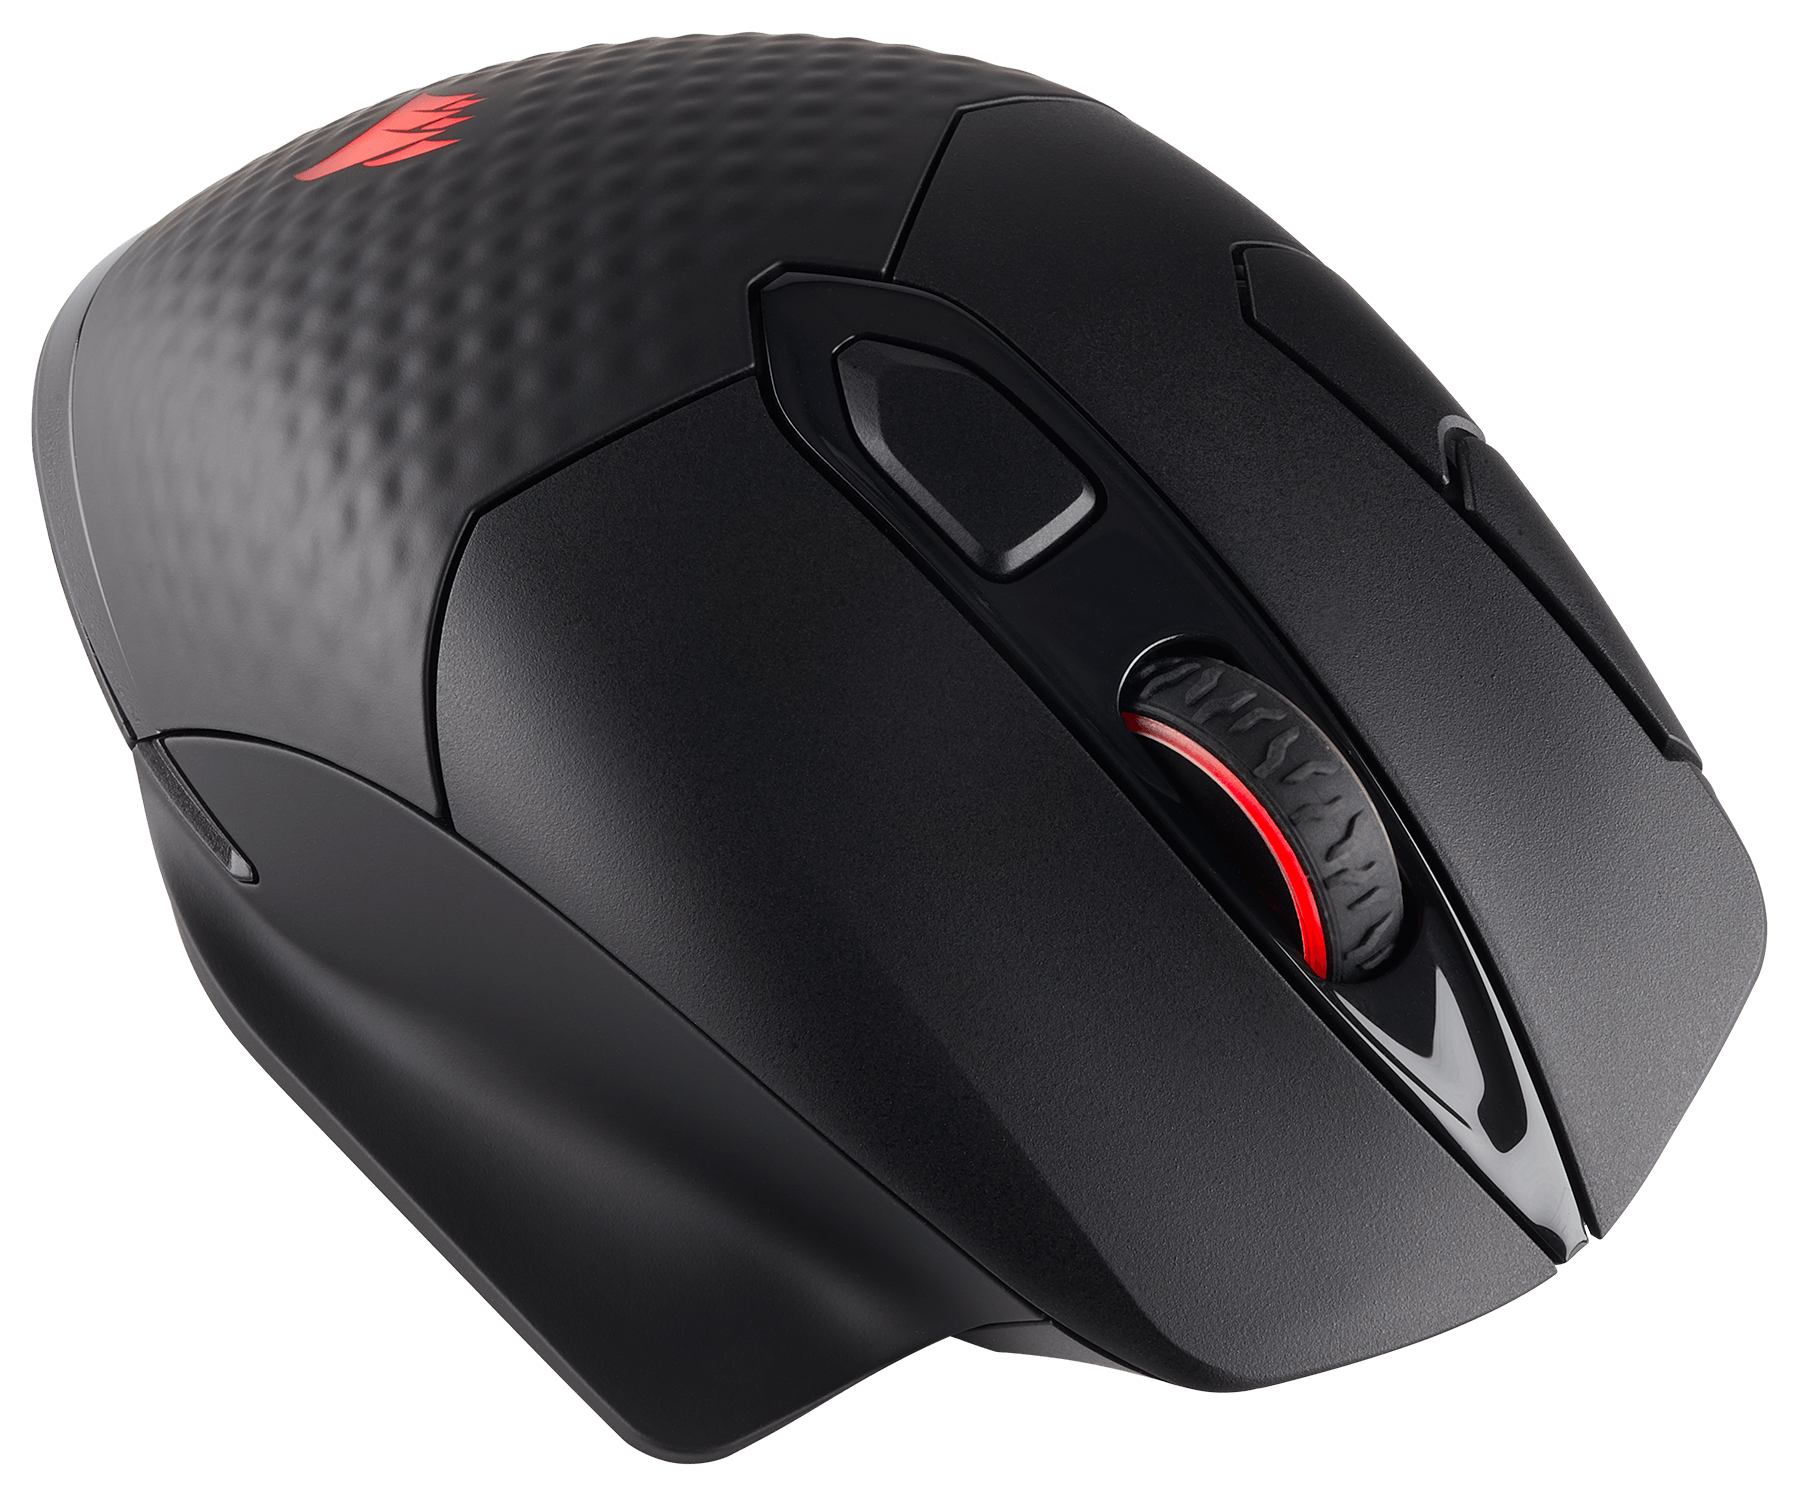 DARK CORE RGB SE Performance Wired / Wireless Gaming Mouse